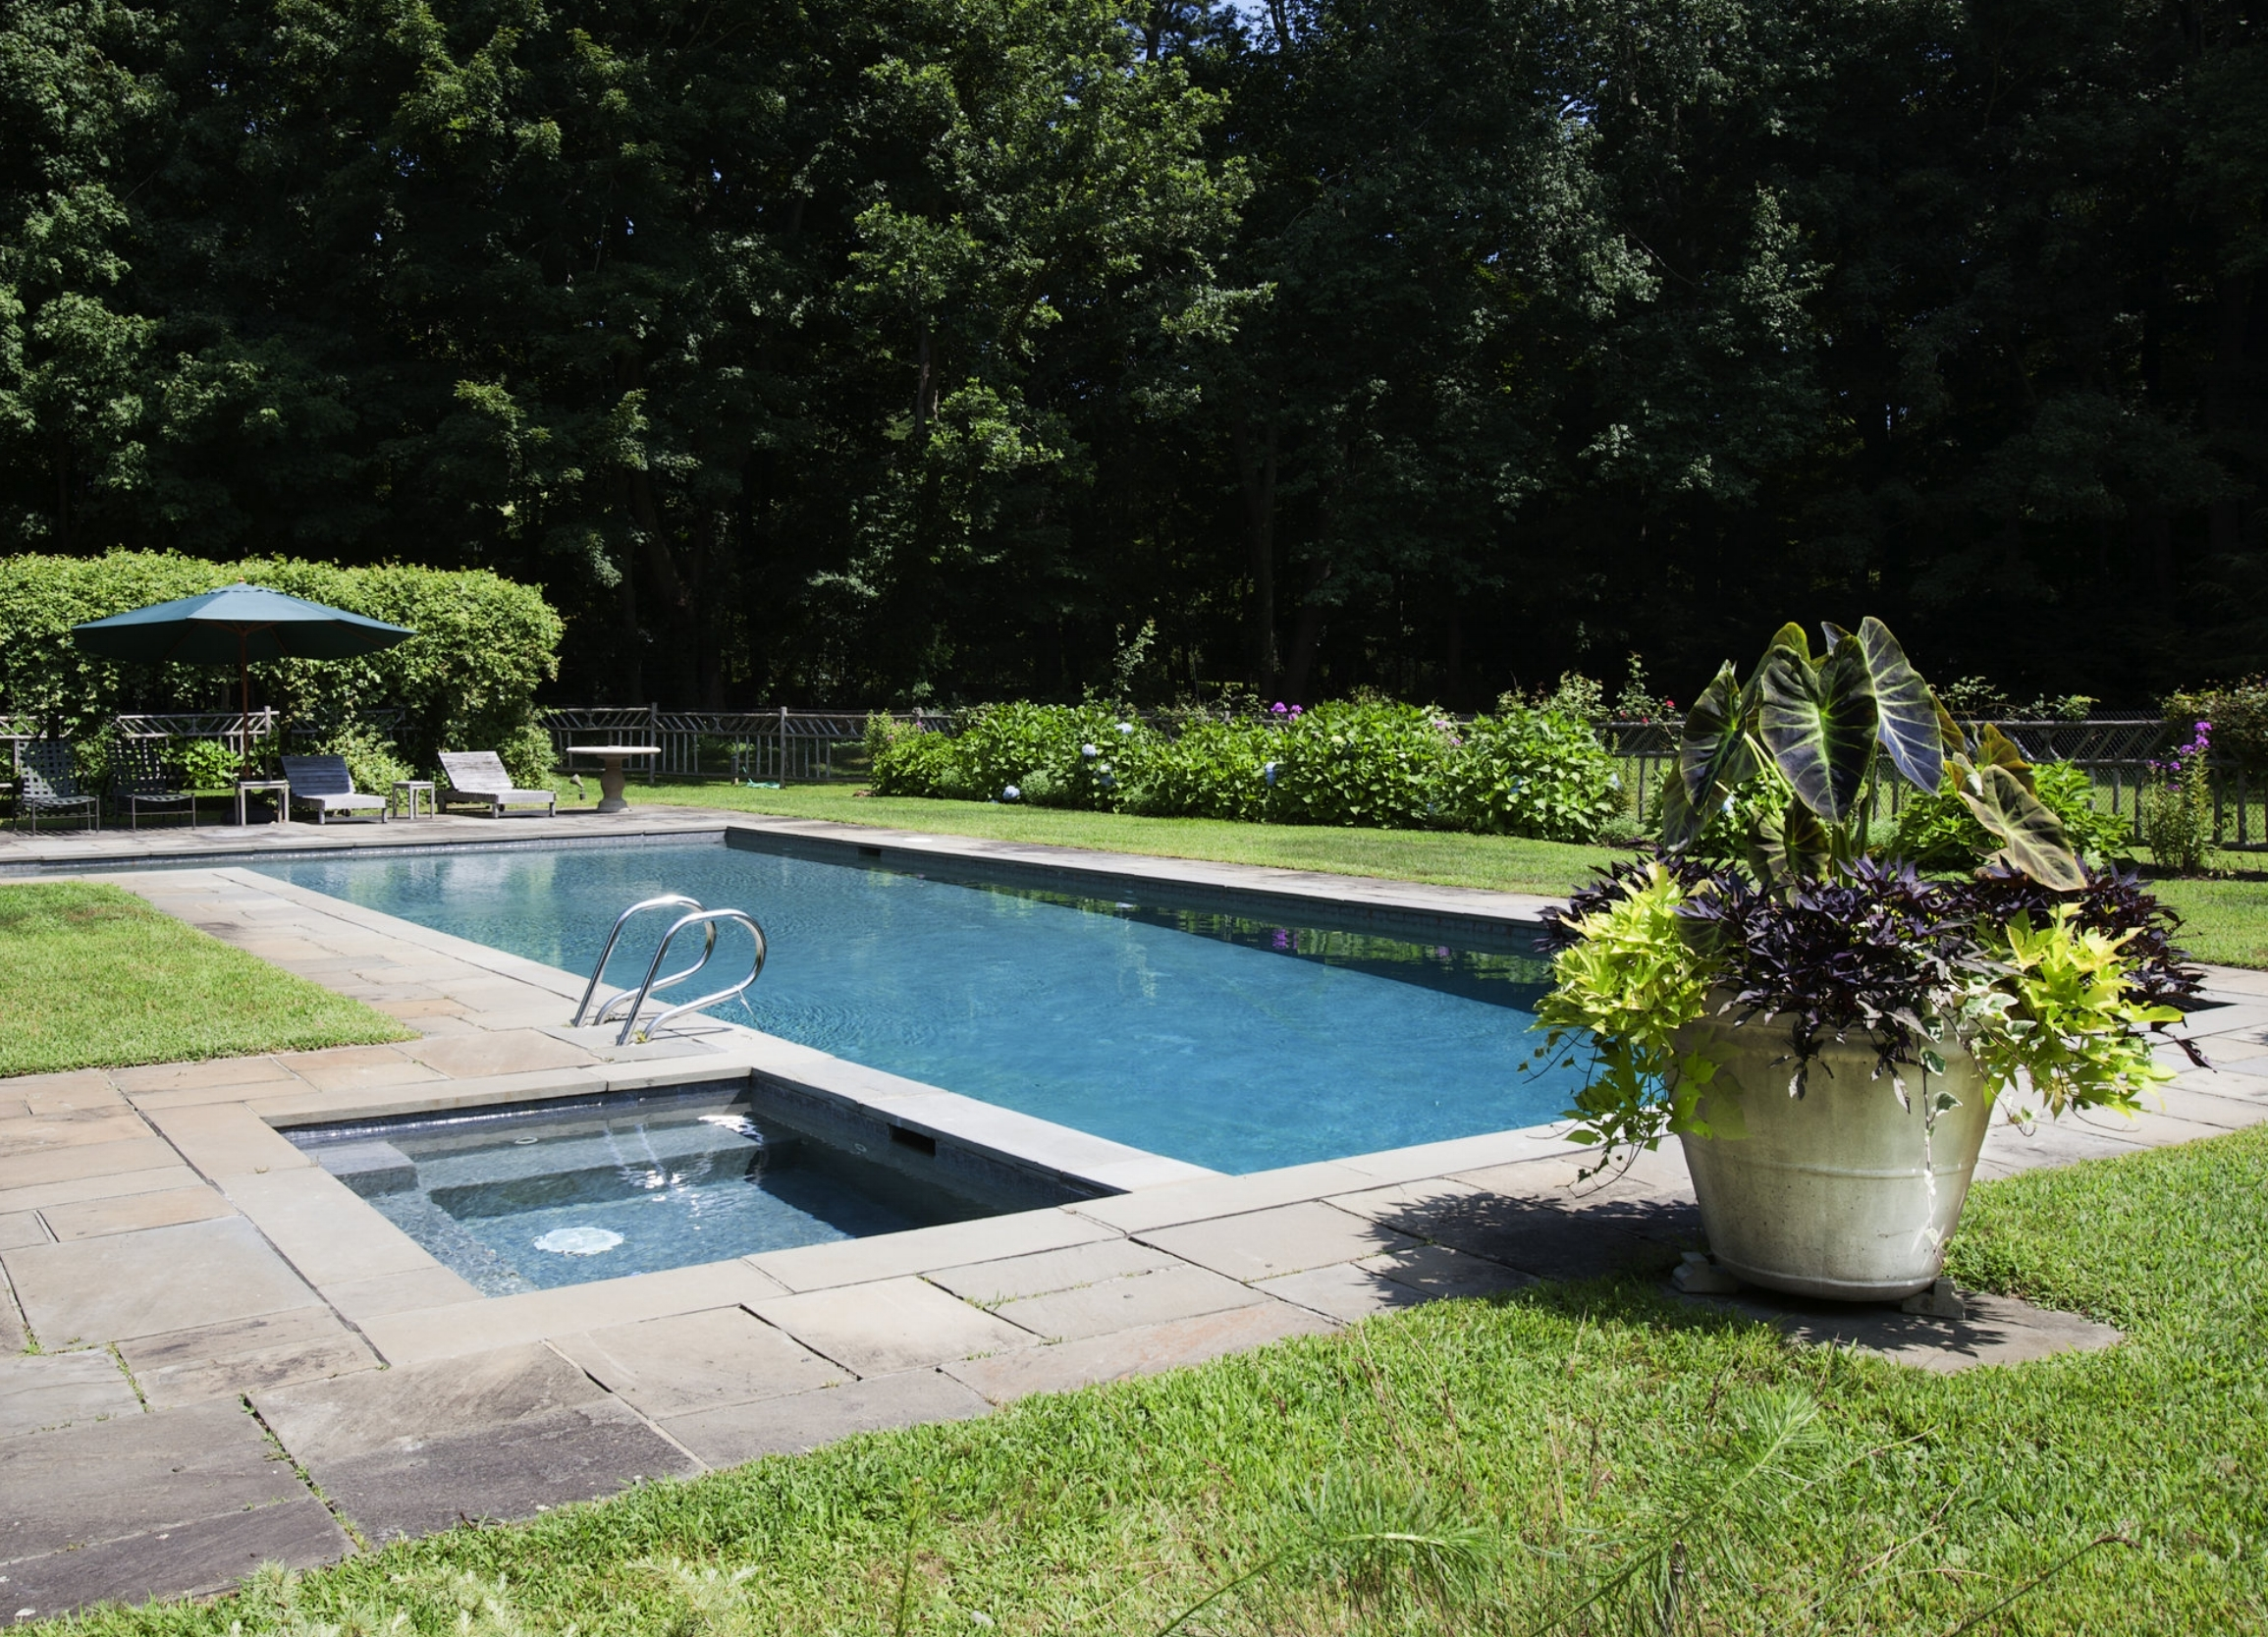 : Landscape and garden design around pool in backyard.